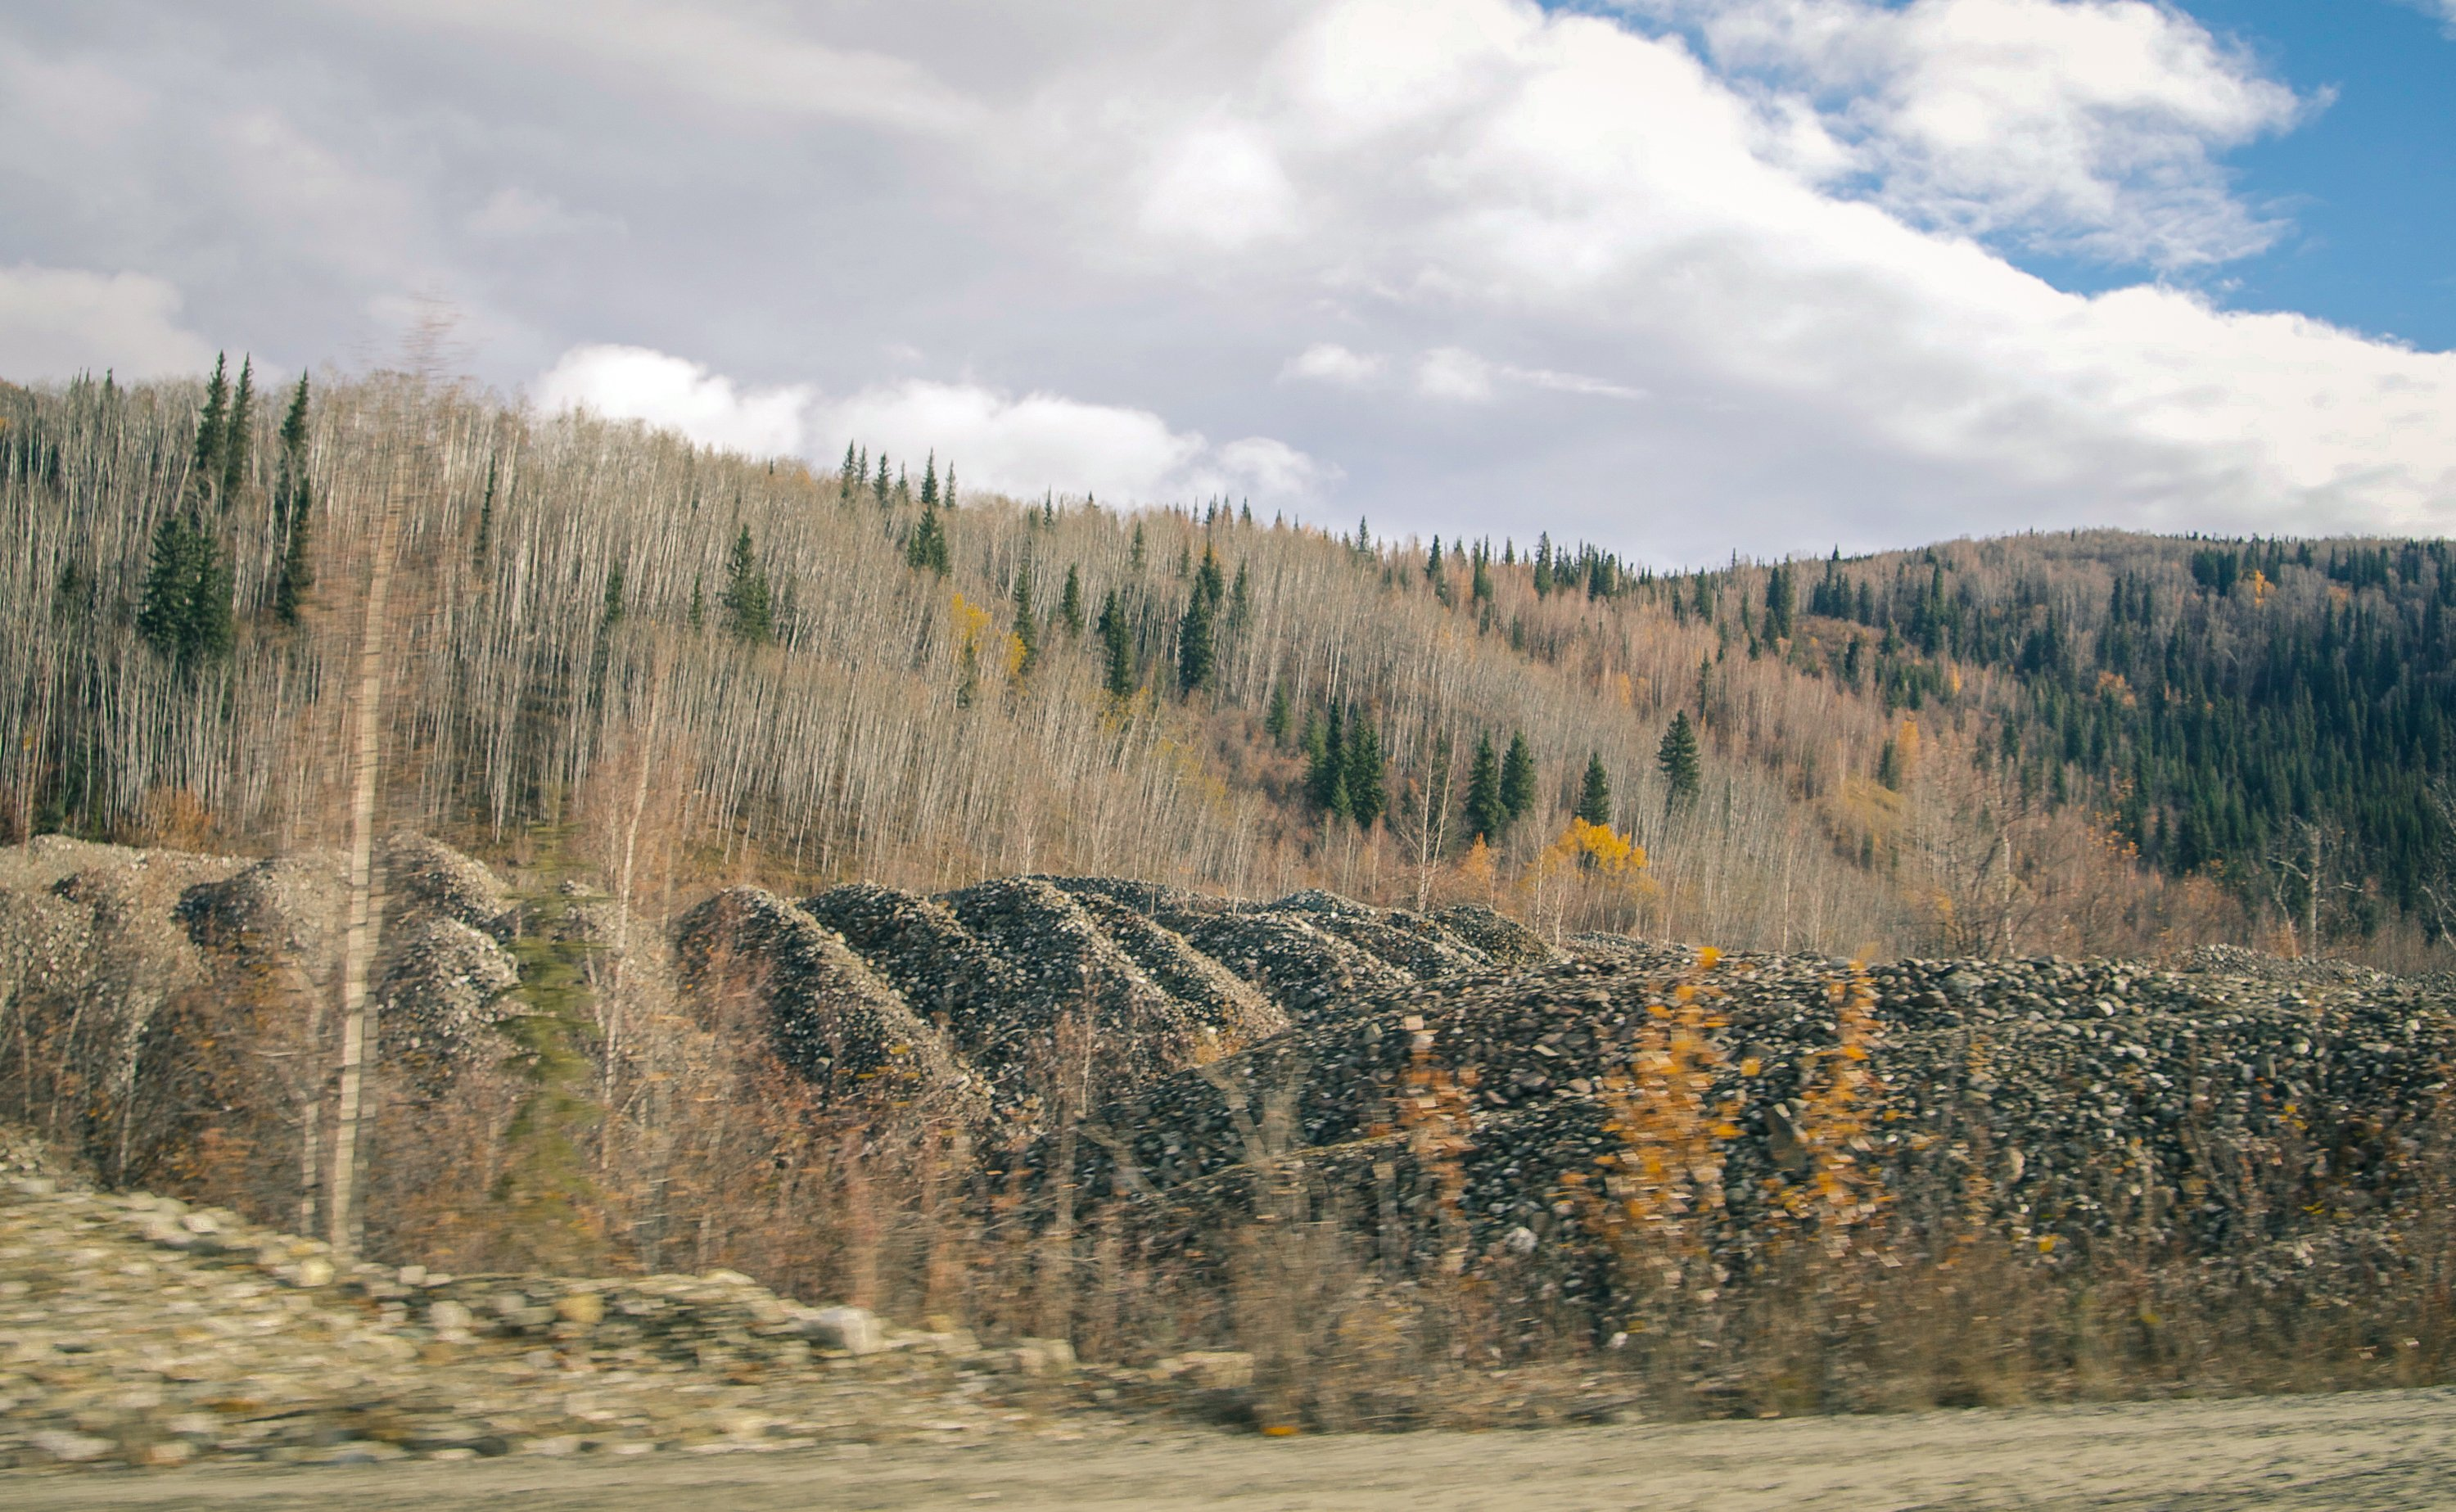 Tailings with trees growing out of them